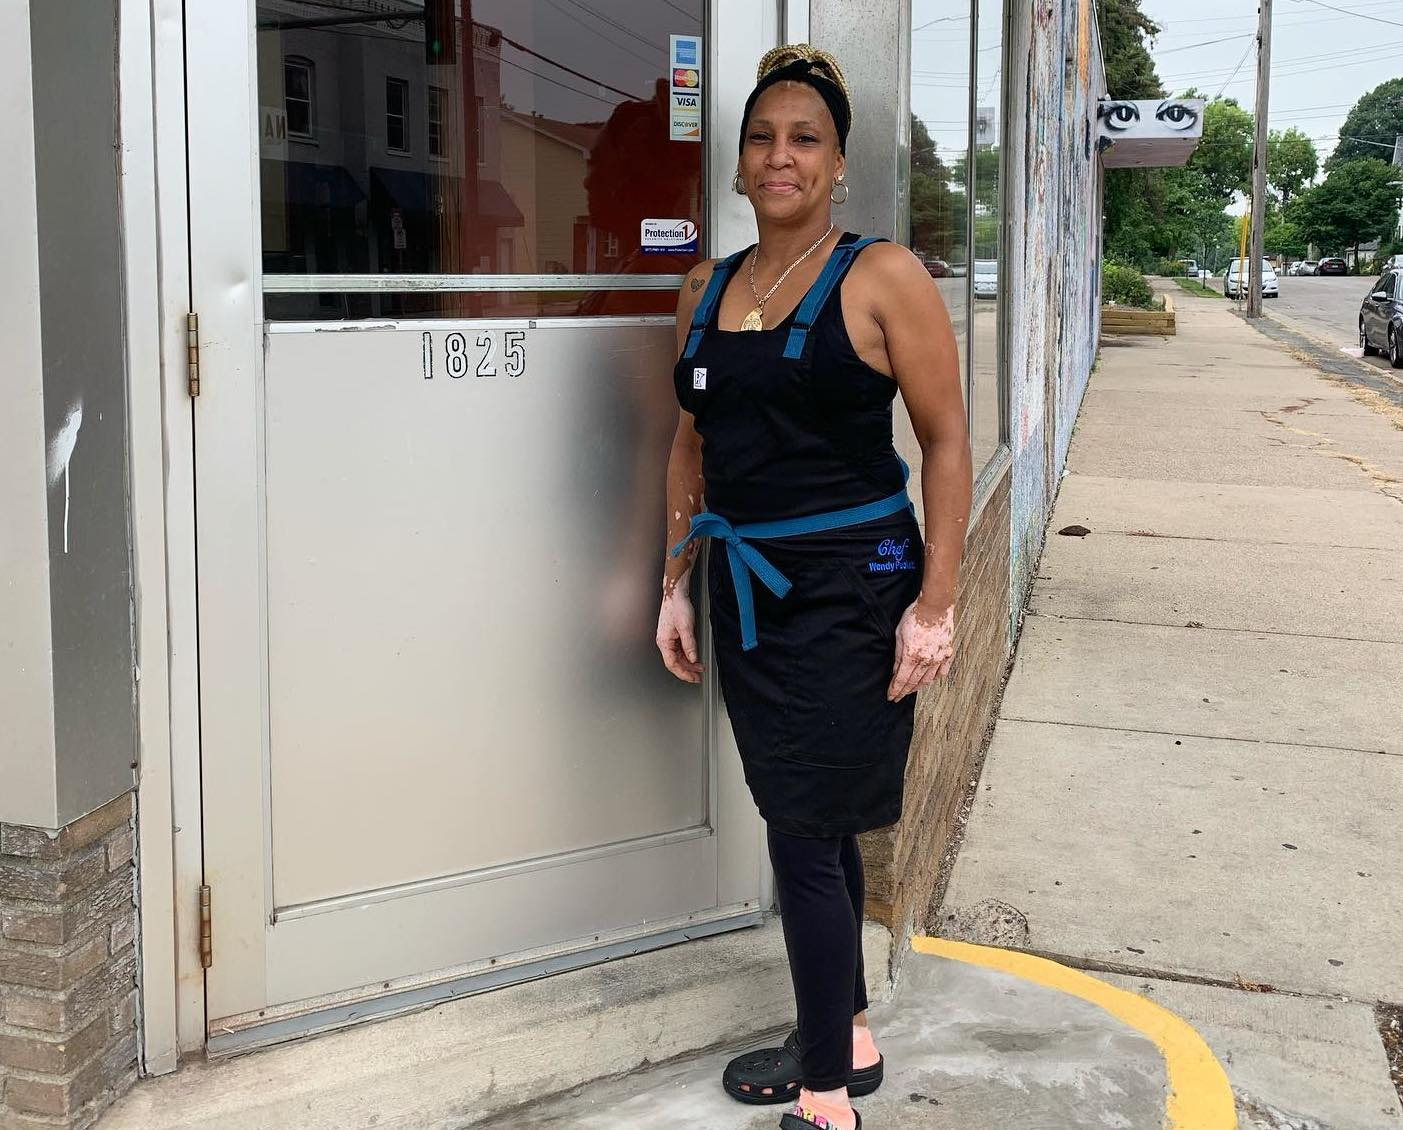 Chef Wendy Puckett stands outside 1825 Glenwood, the new location for her restaurant, arms crossed, wearing a Project Black and Blue Craftmade Apron, arms at her sides, a small smile playing at her lips